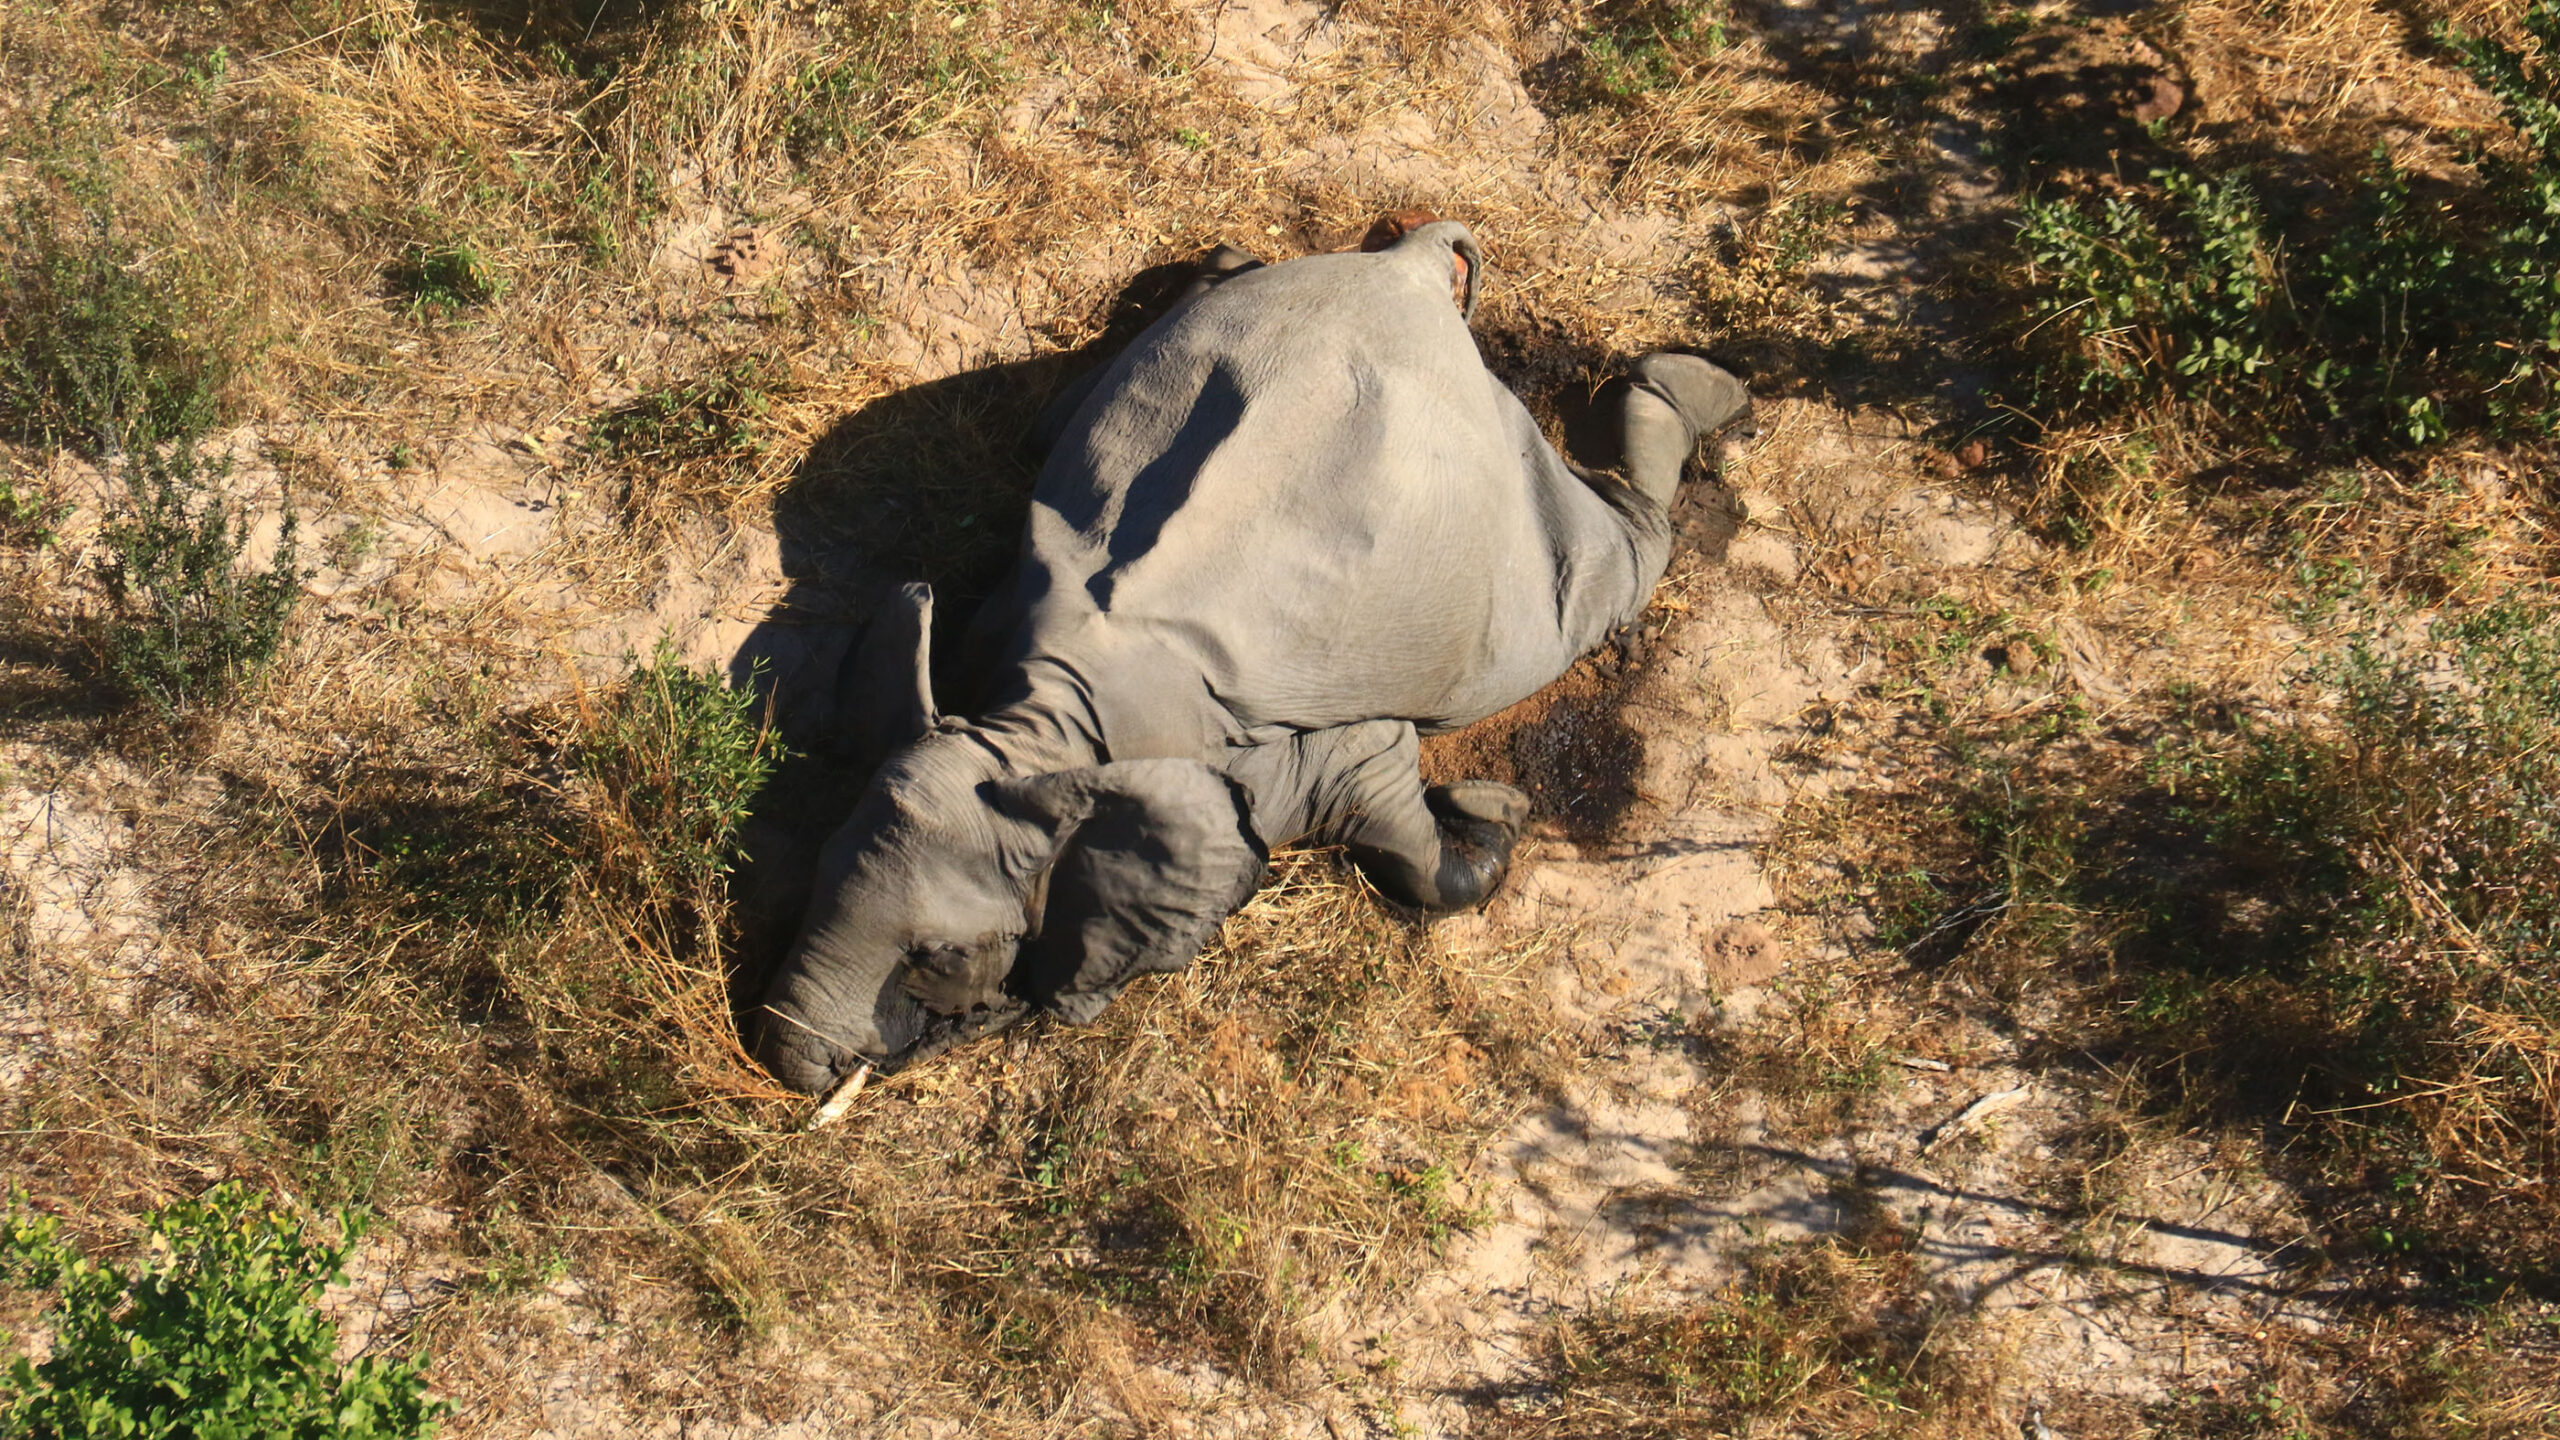 Bacteria in Water is the Cause of Elephant Deaths in Botswana - Newslibre